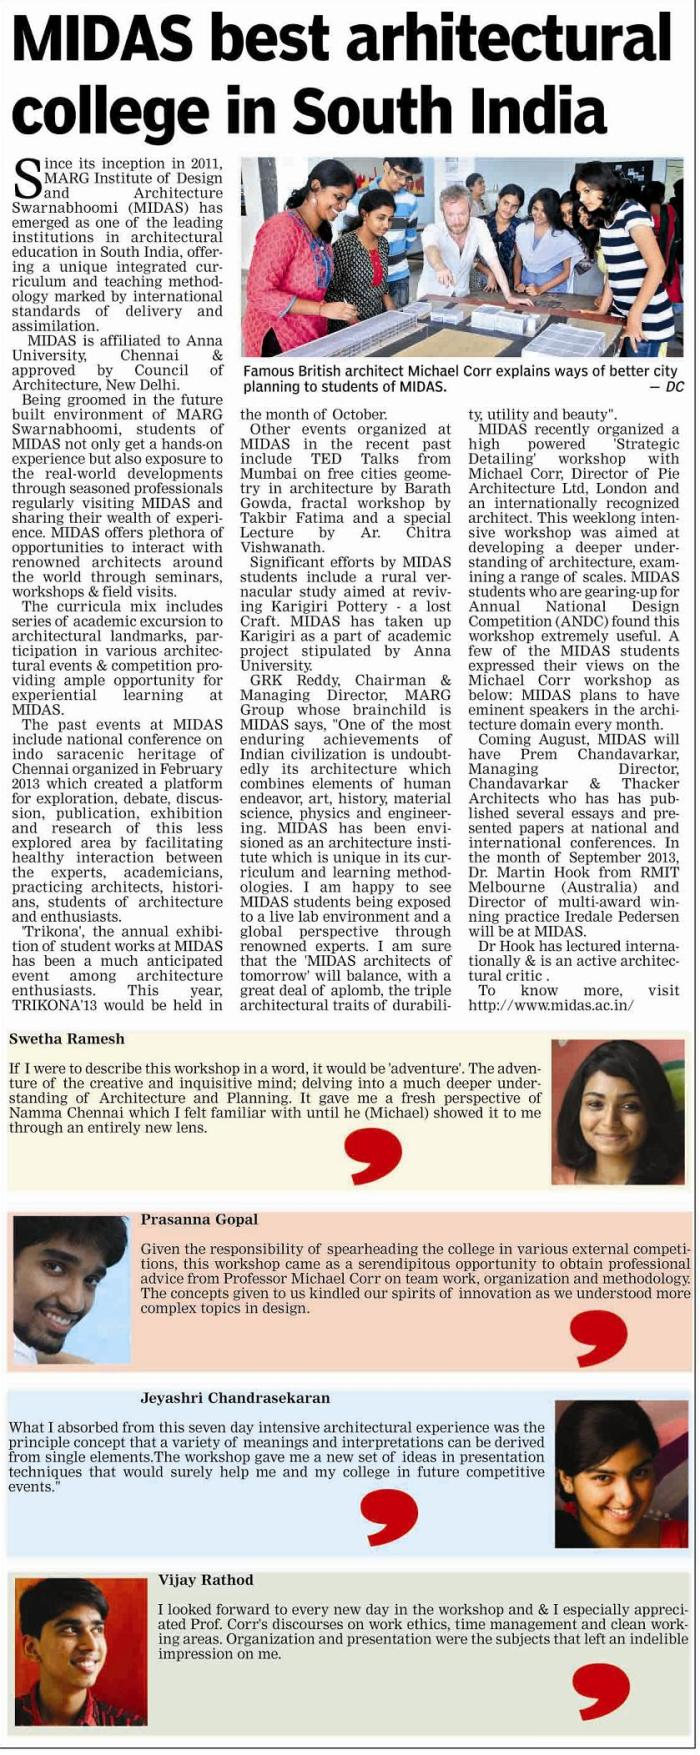 MIDAS best architecture college in South India, Deccan Chronicle